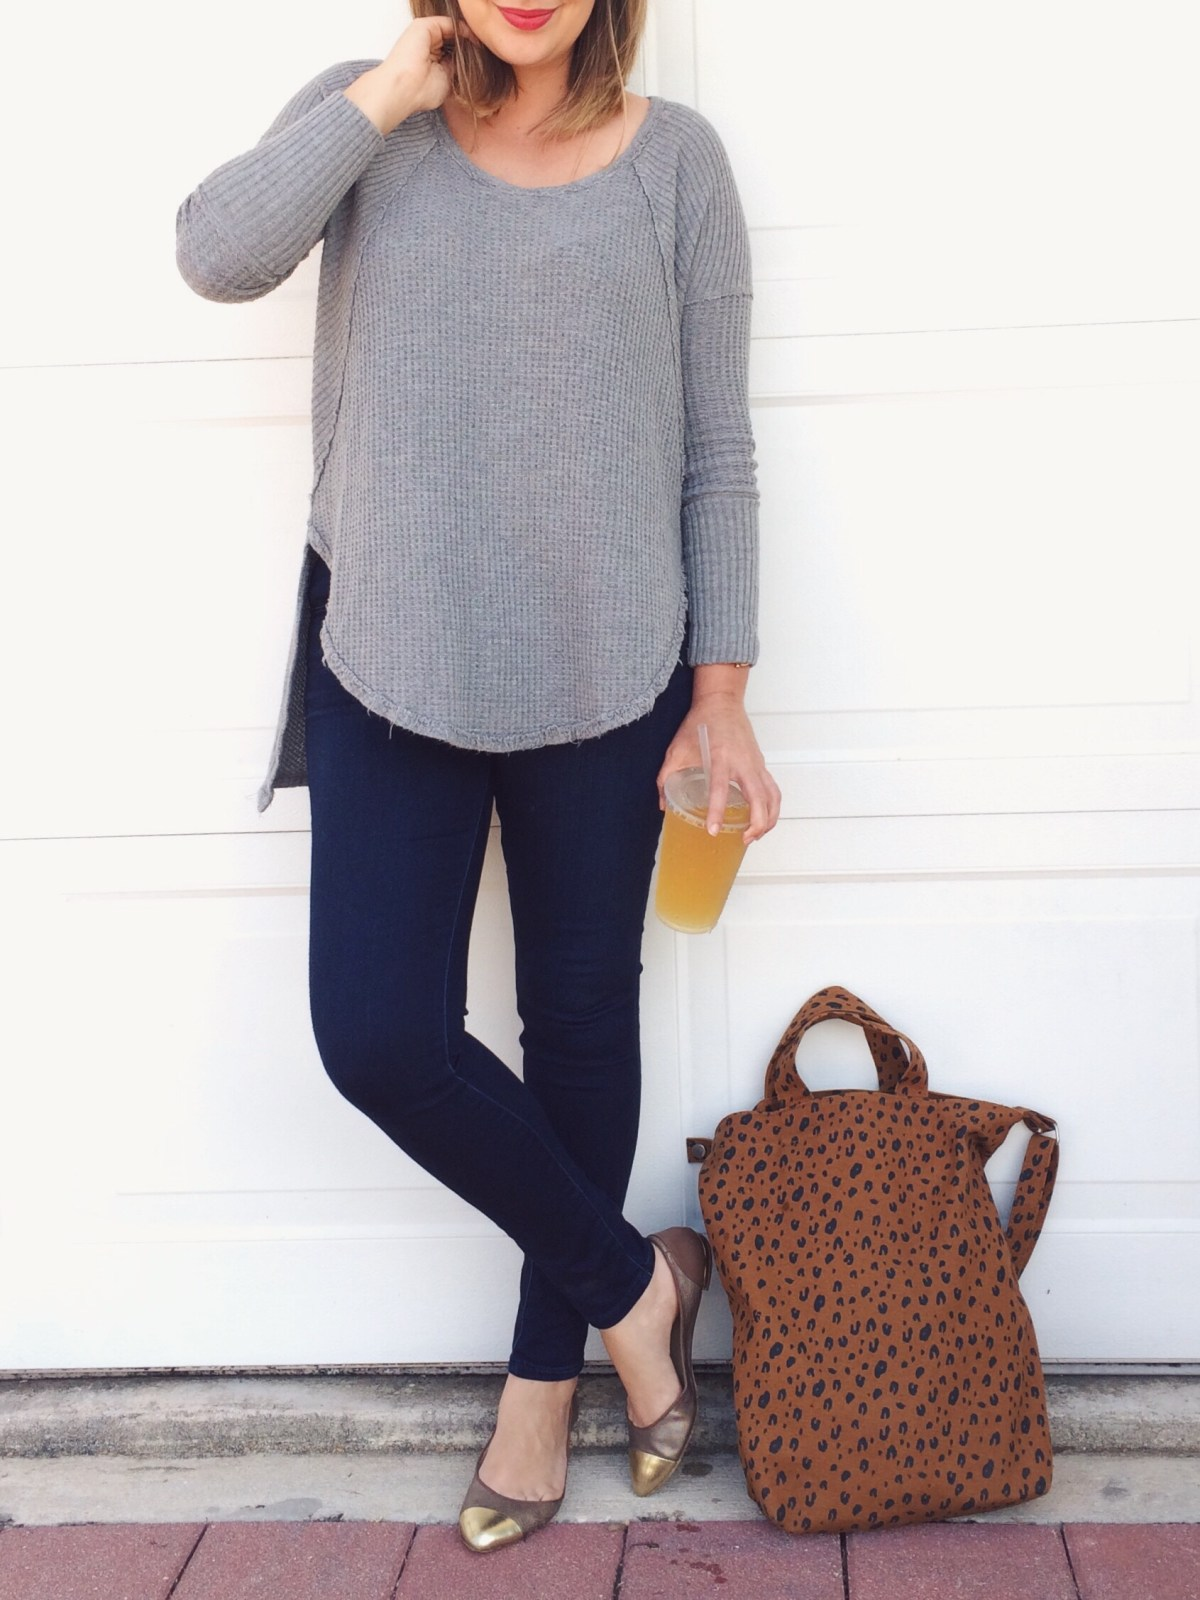 OOTD: We the Free Ventura thermal with AE jeggings and Brian Atwood flats. keiralennox.com